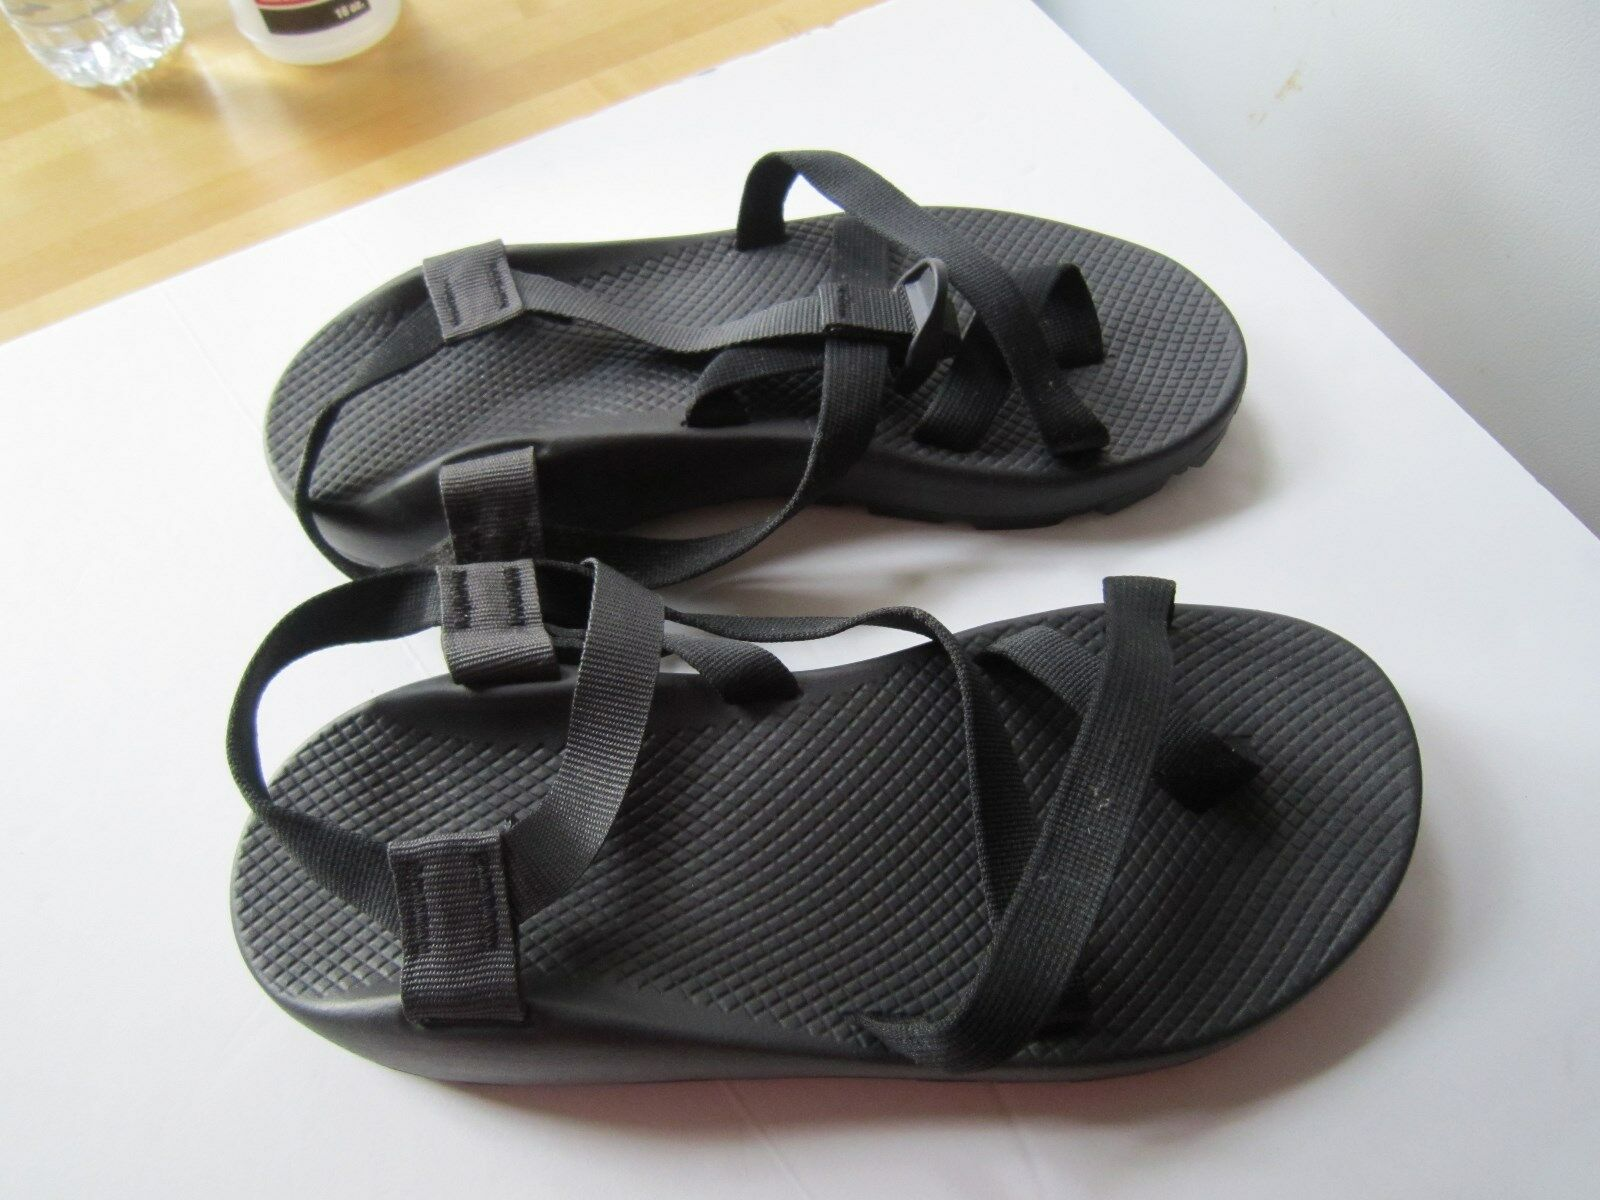 Chaco SandalsZ 1 Size Sandals Box New Nowexf1197 12 Men's Unaweep In nwOPk80